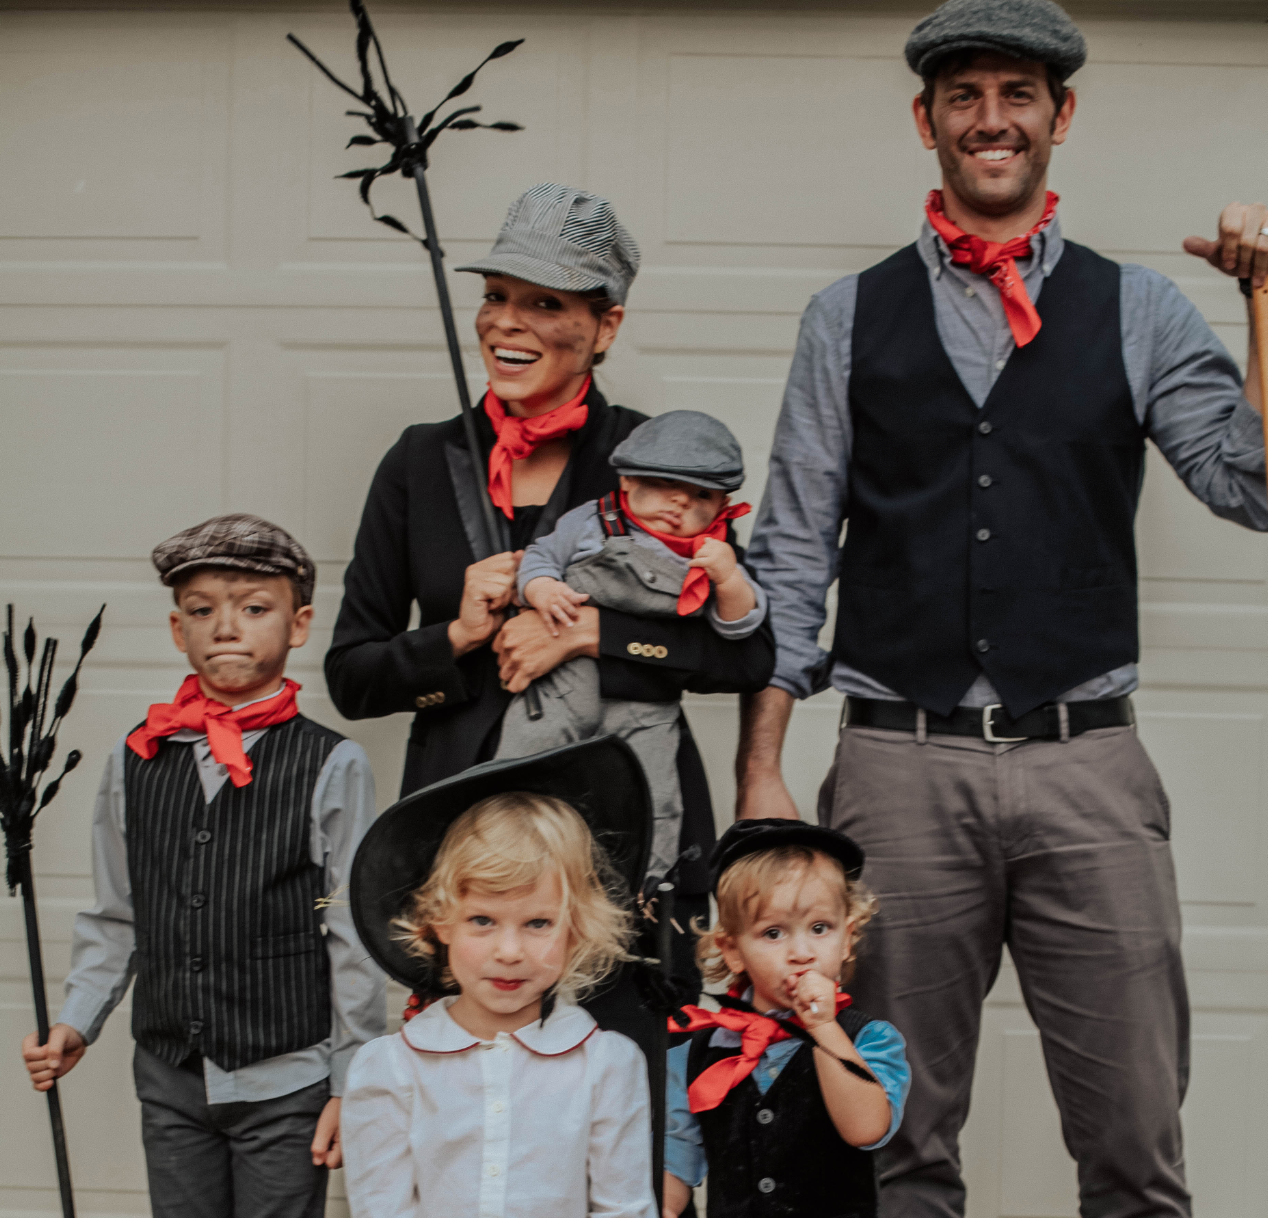 Mary Poppins chimney sweeps family Halloween costume